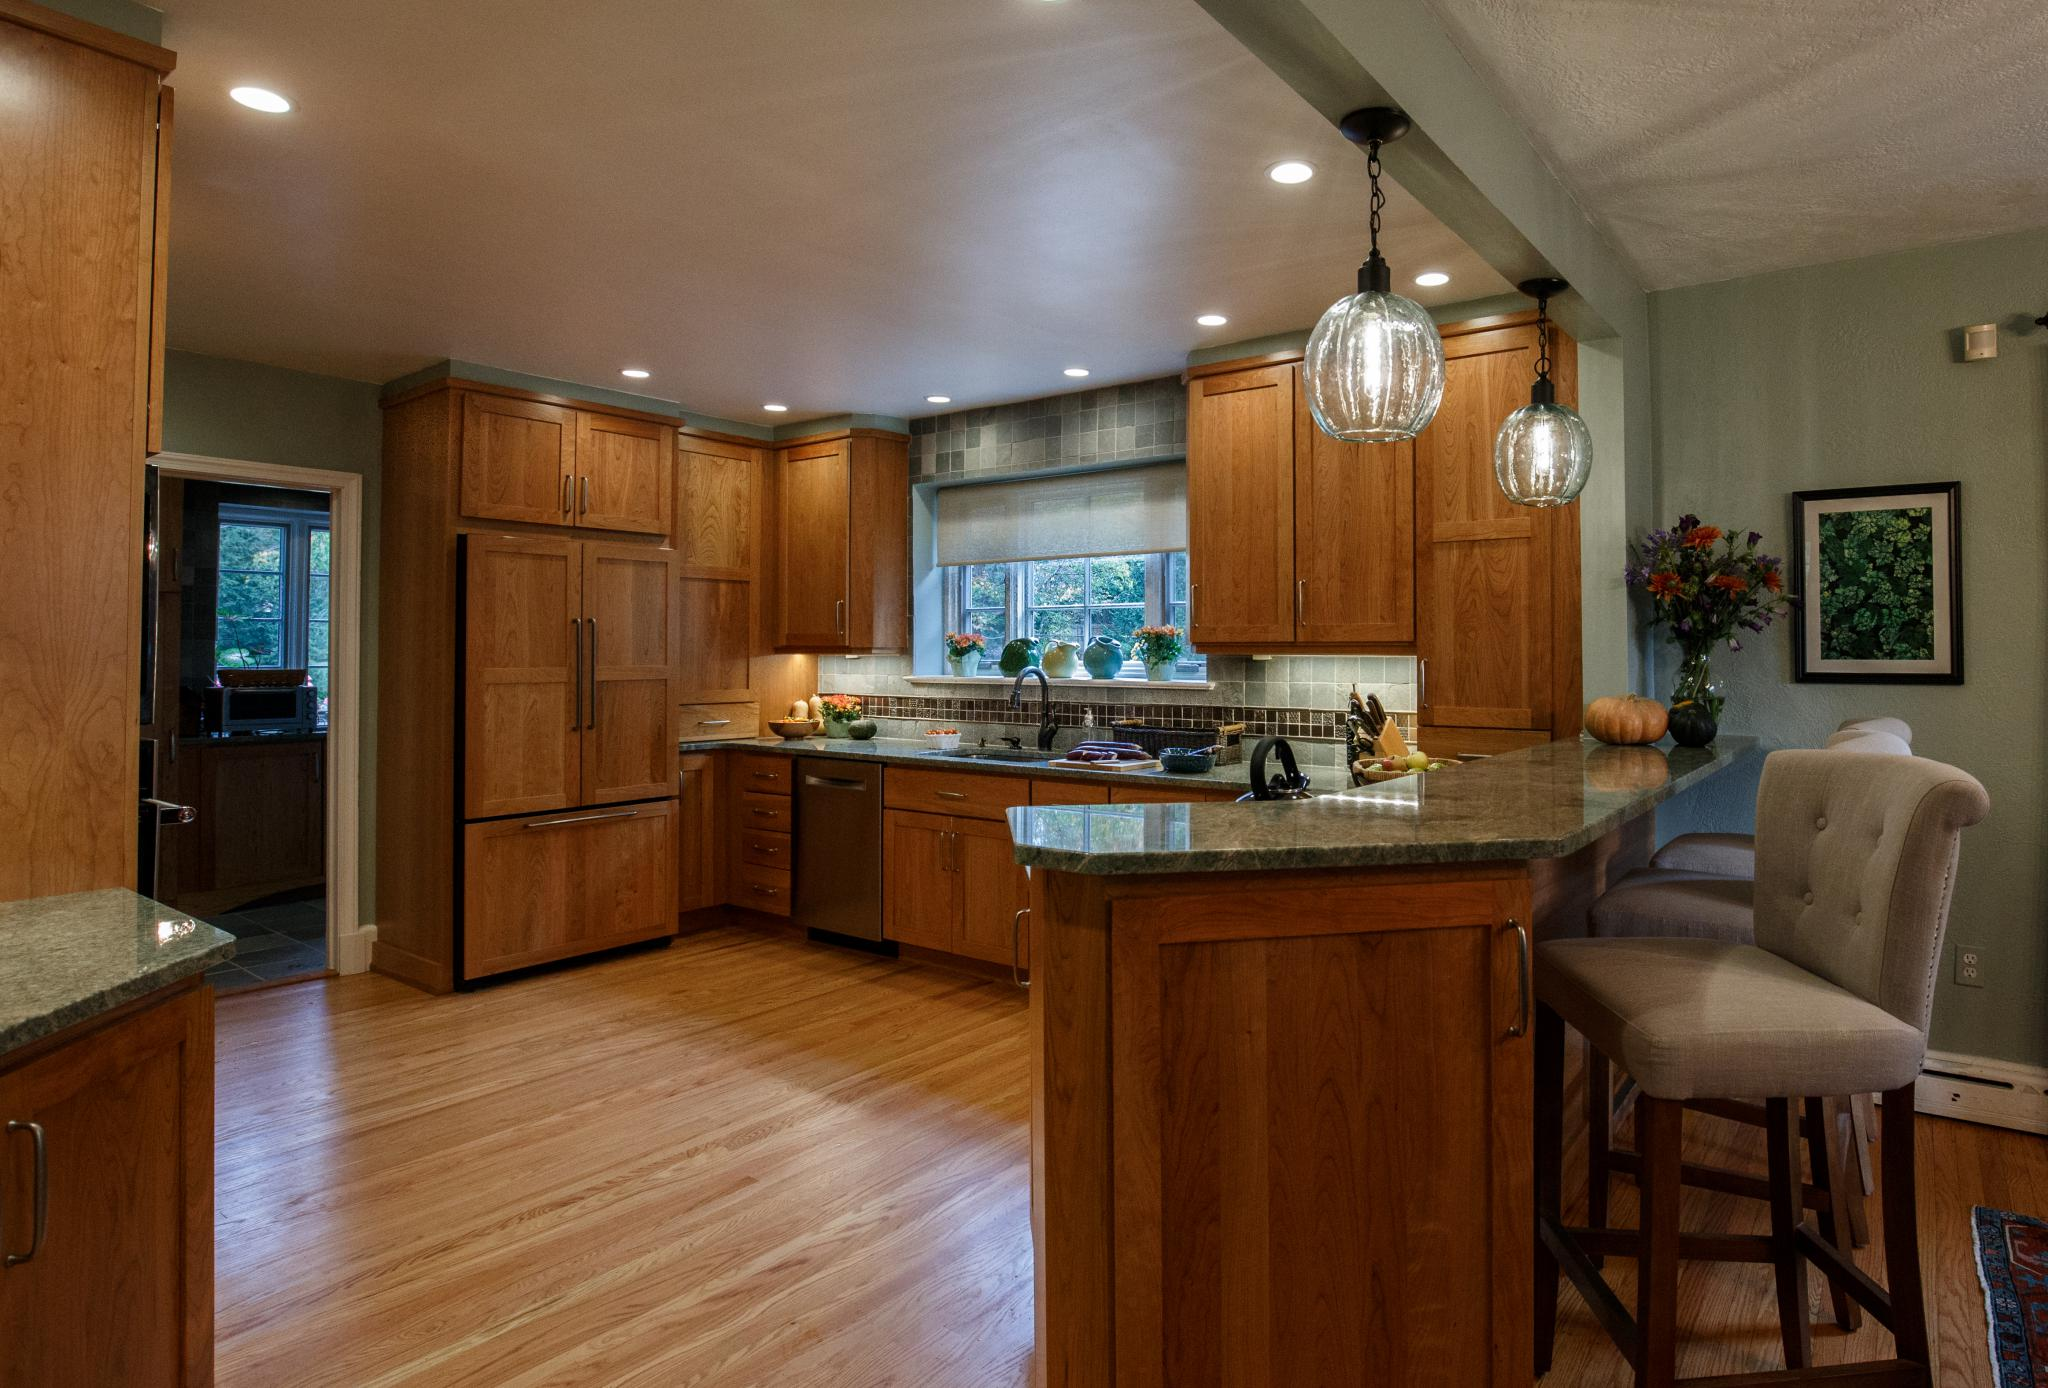 Kitchen Cabinets Should They Go To The Ceiling Performance Kitchens